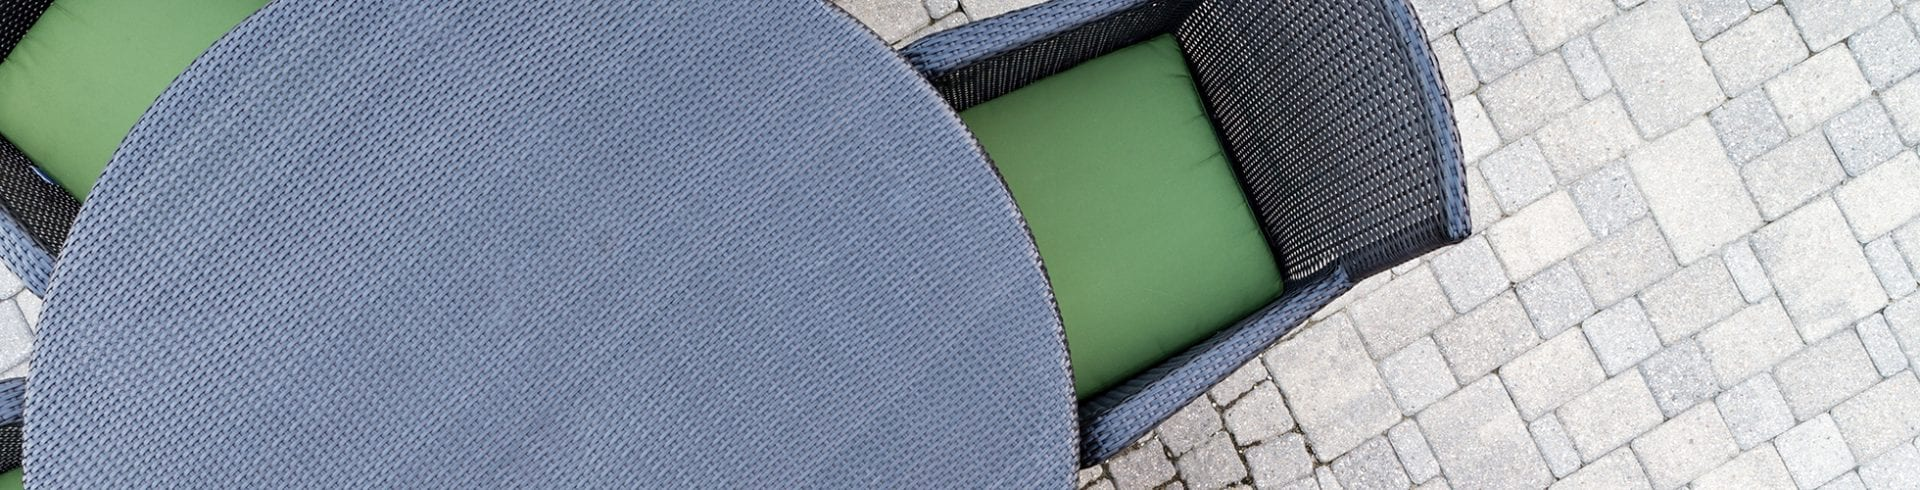 Preventing Mold on Patio Umbrellas & Patio Furniture | Blog | Mold Off®